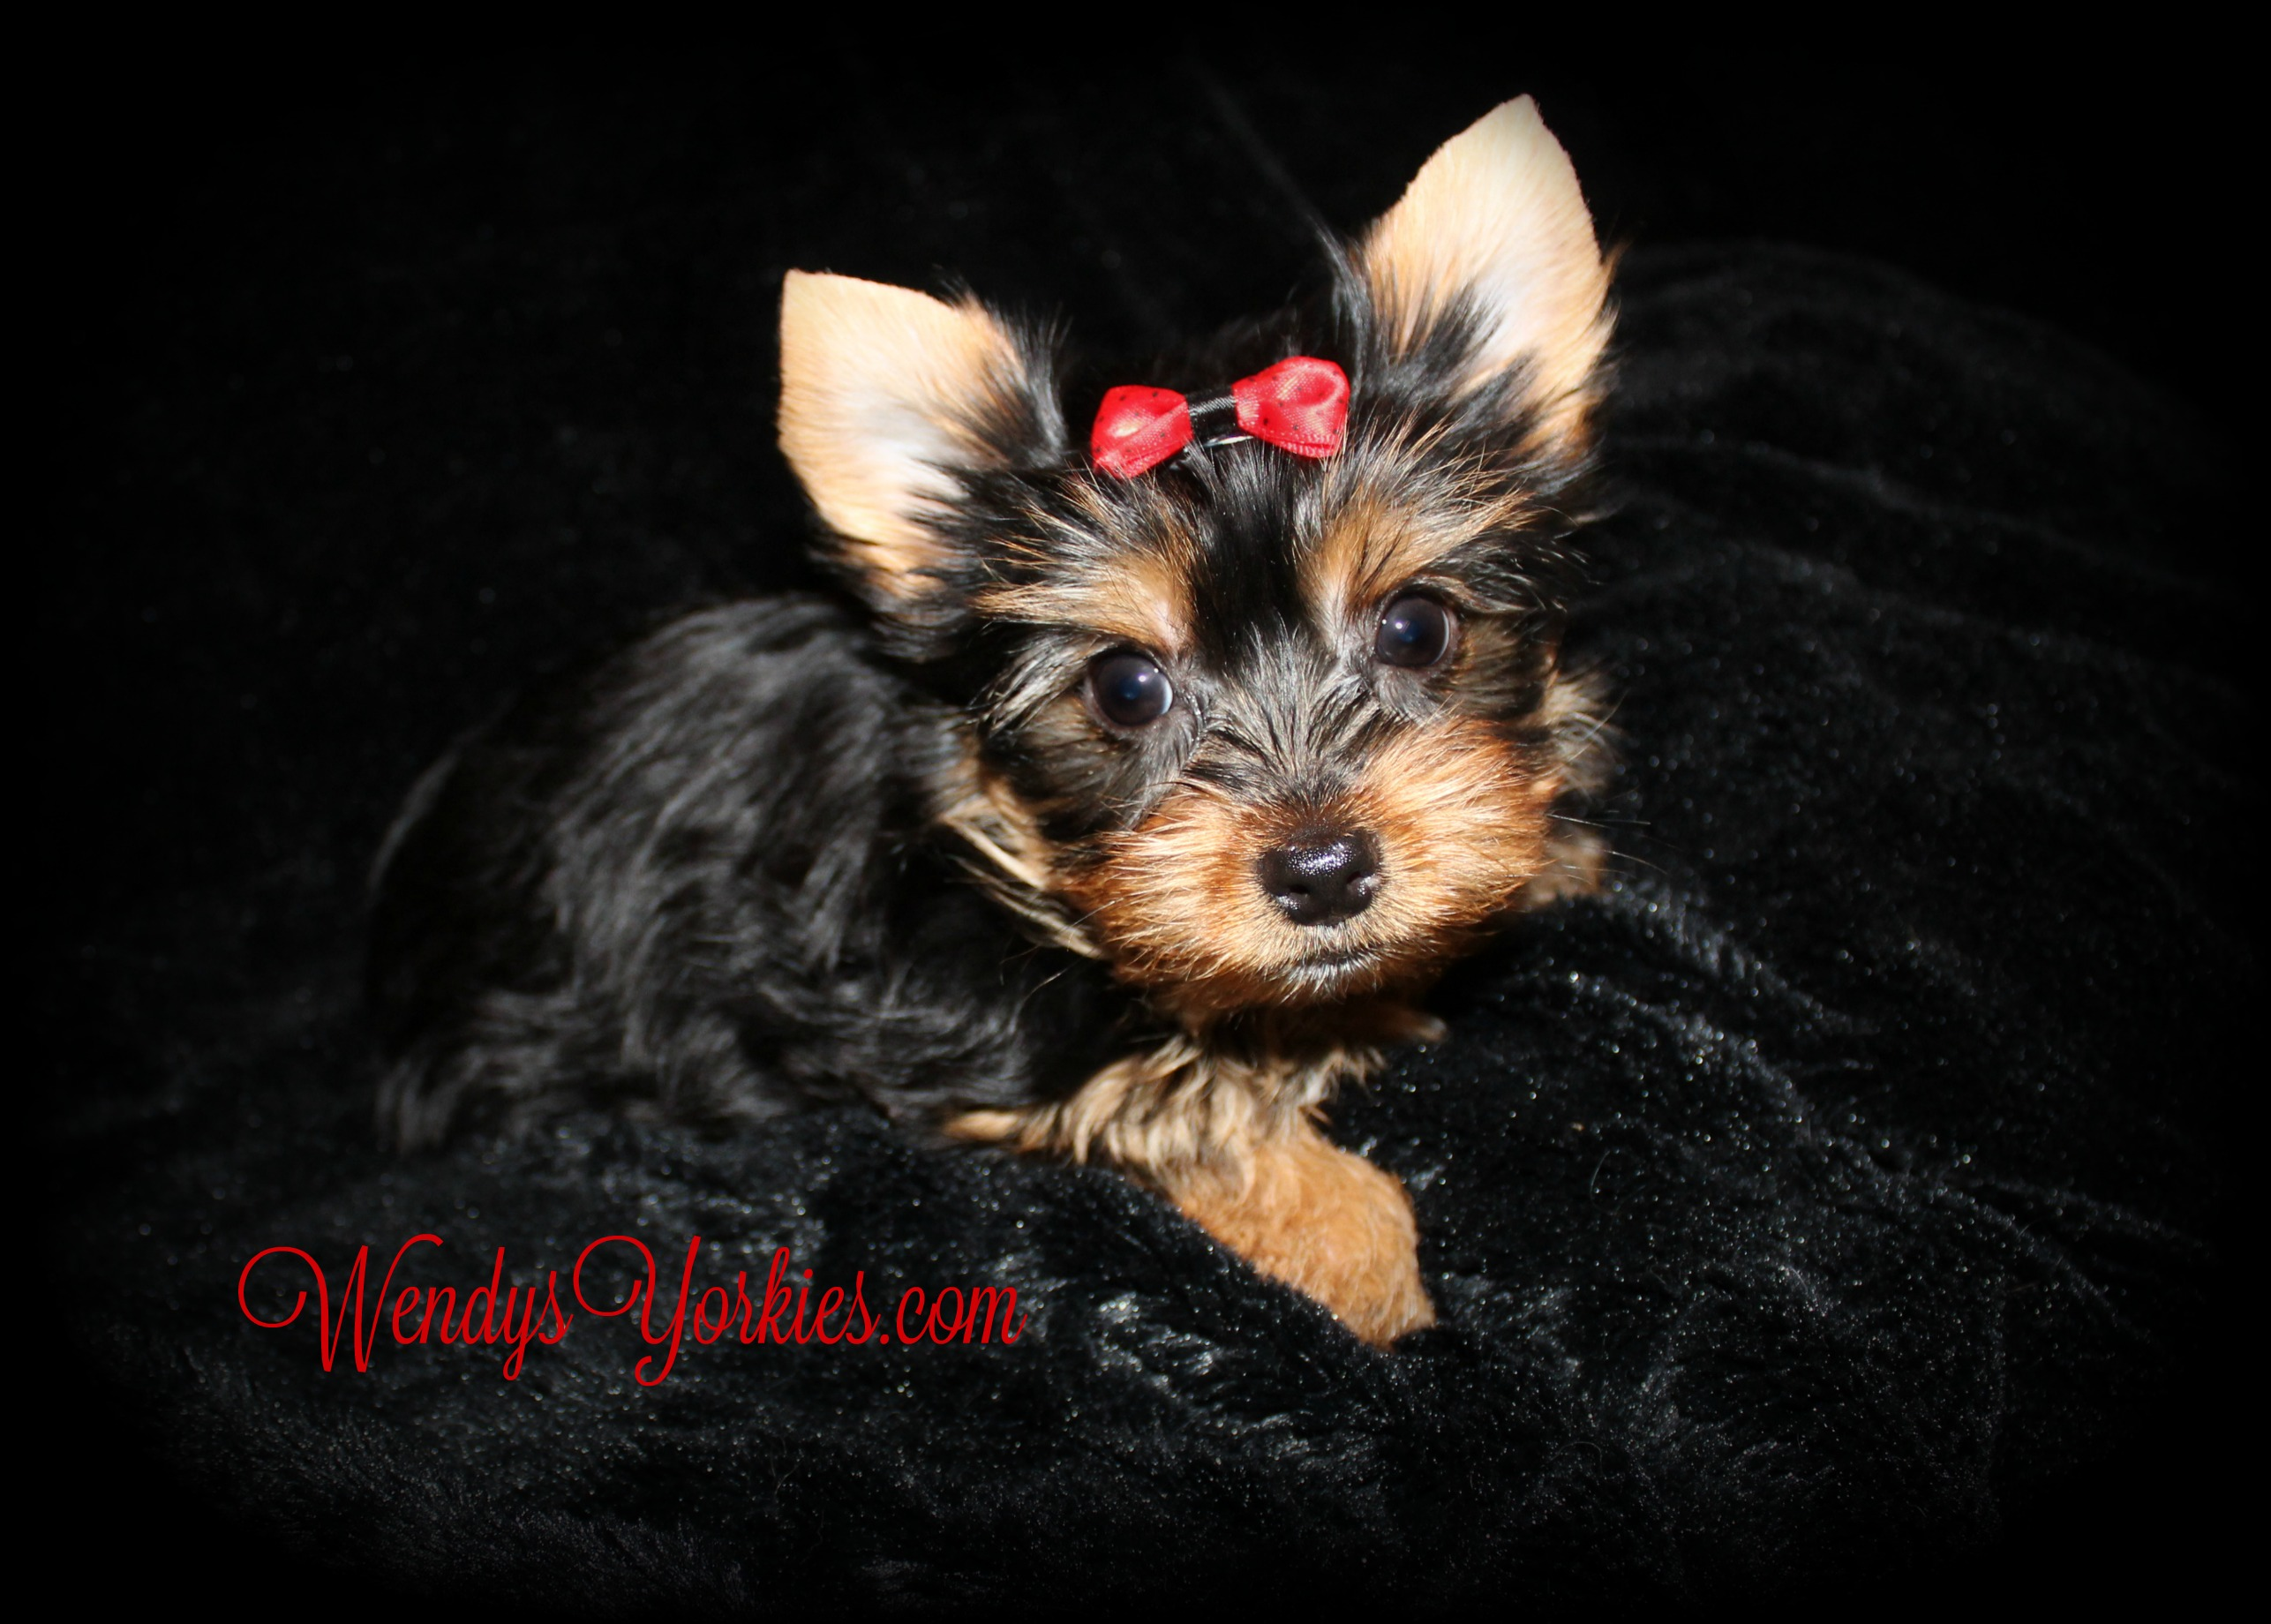 Yorkie puppy for sale, WendysYorkies.com, Anna m1